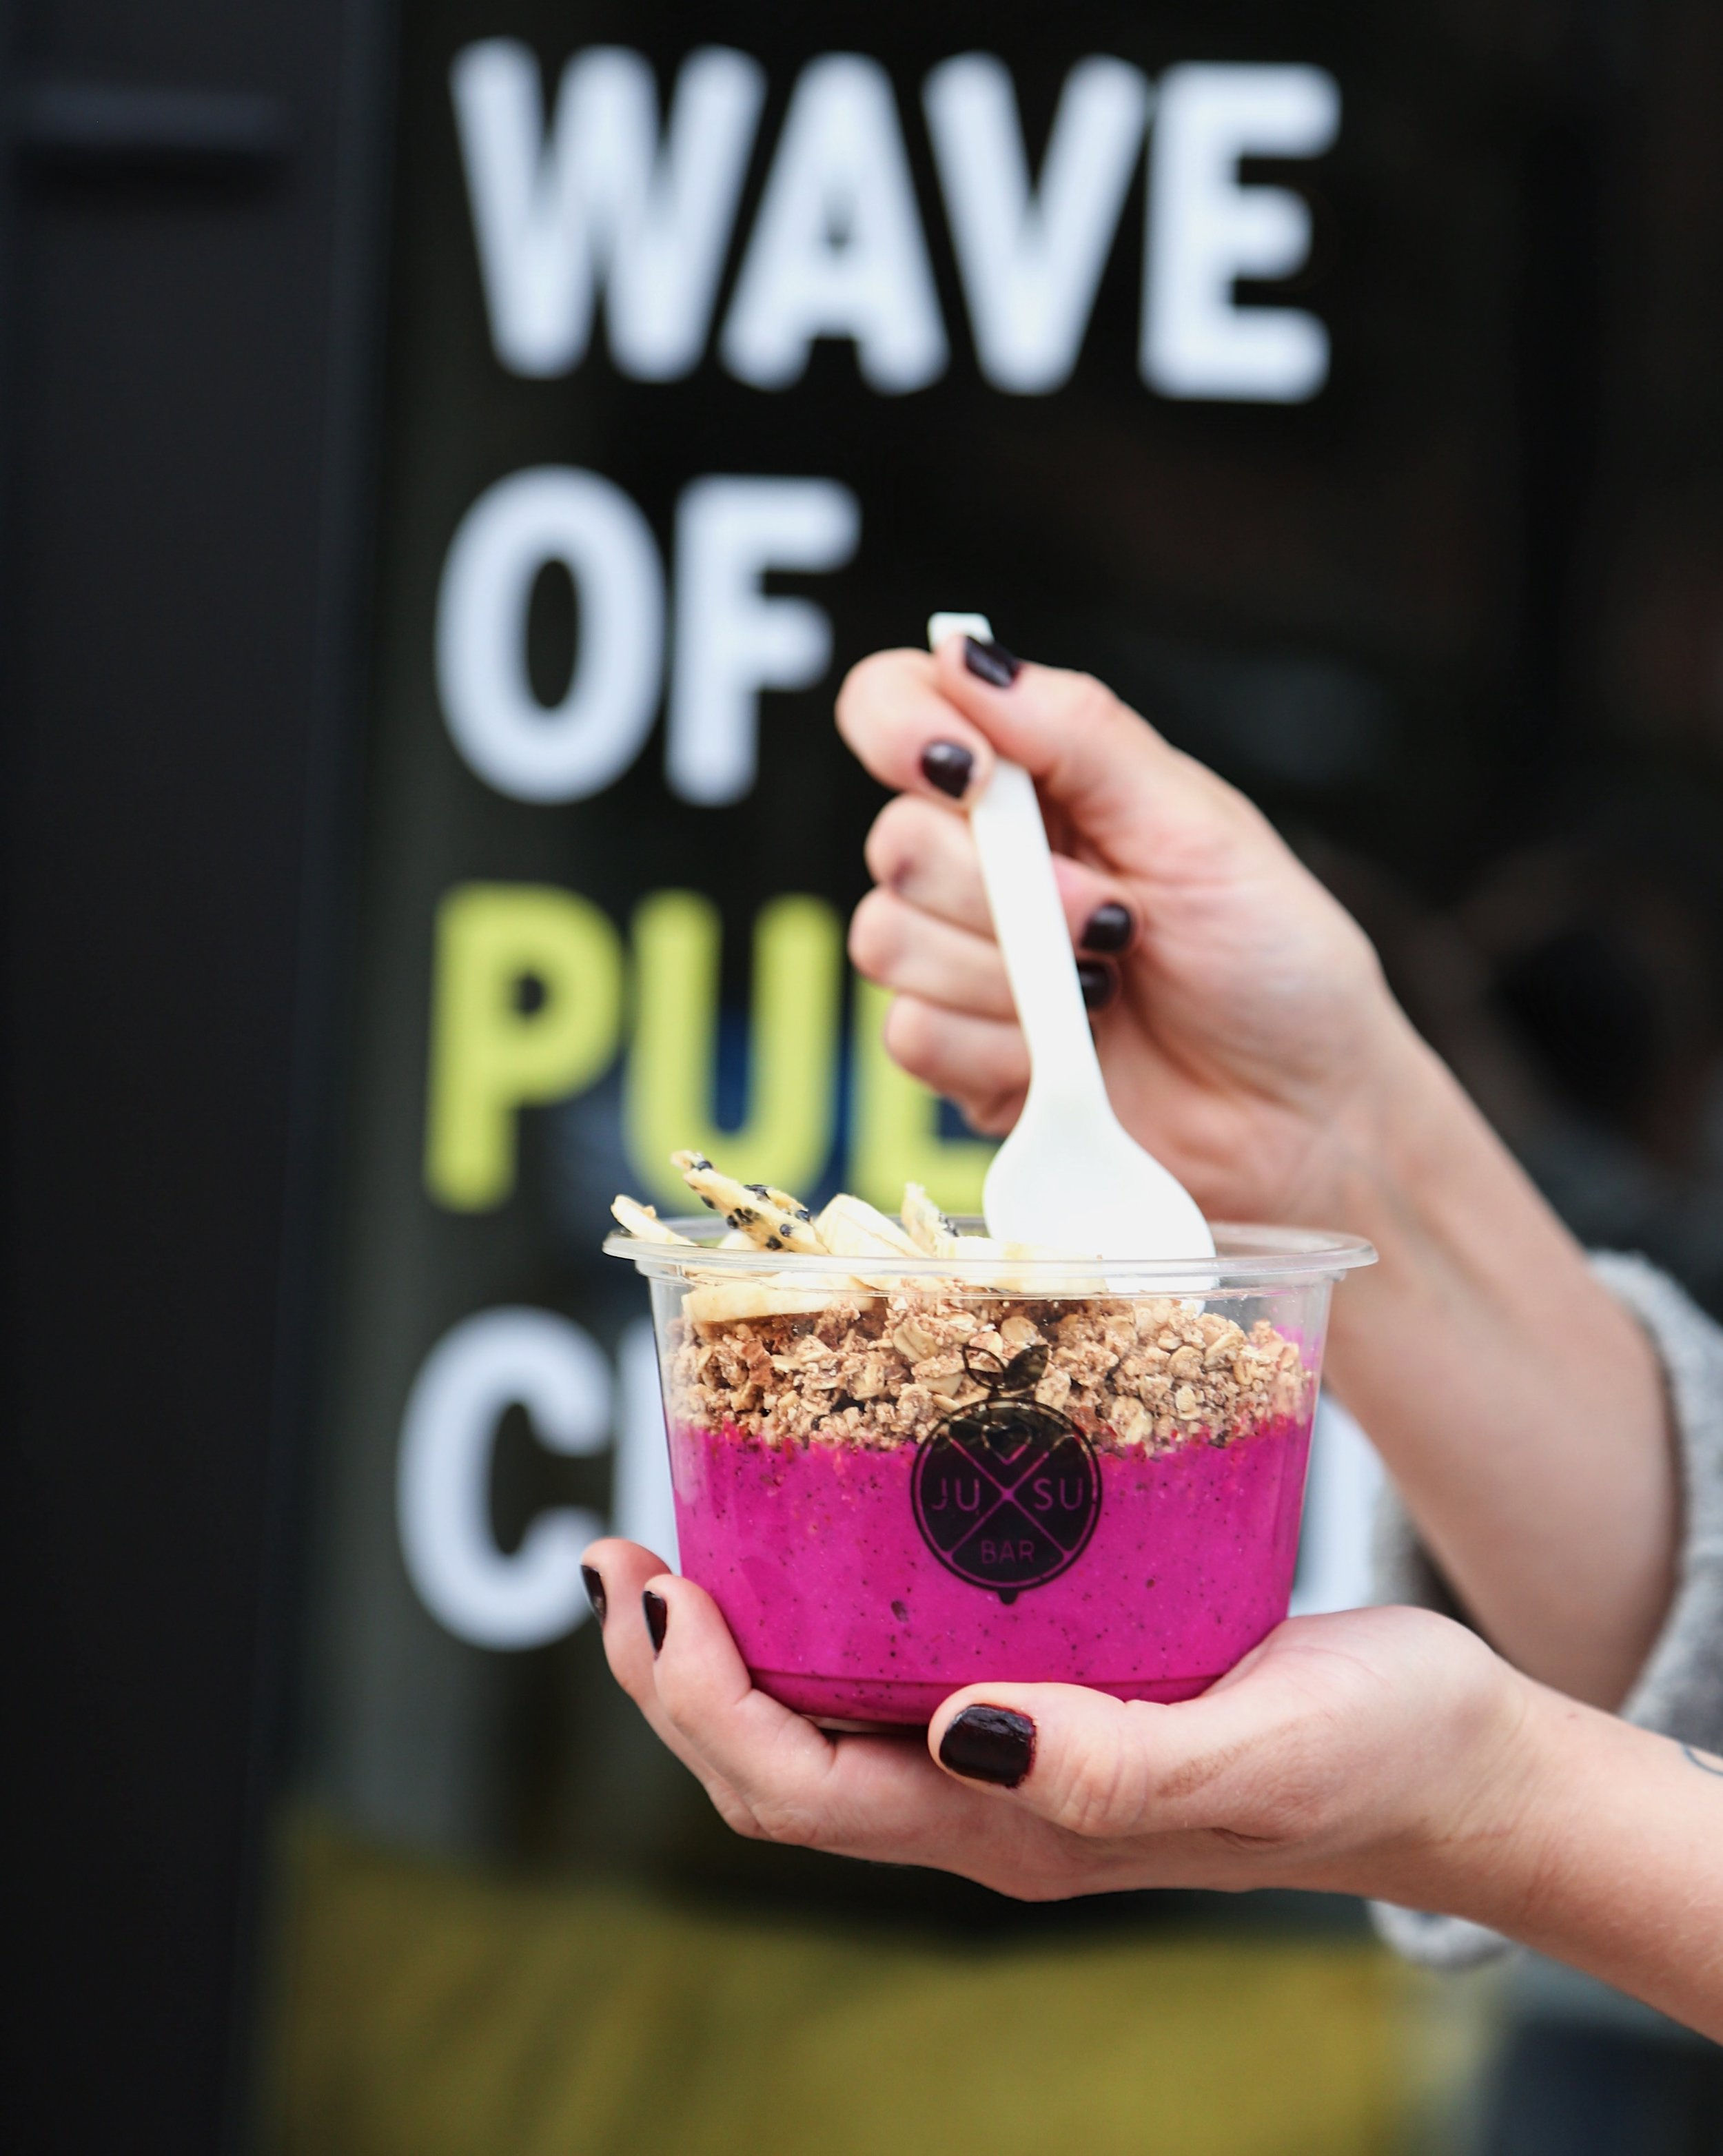 Smoothie Bowls - High in fibre and perfect for those on the go. Each bowl is topped with Jusu's gluten-free almond granola(Pink Dragon Bowl Pictured)